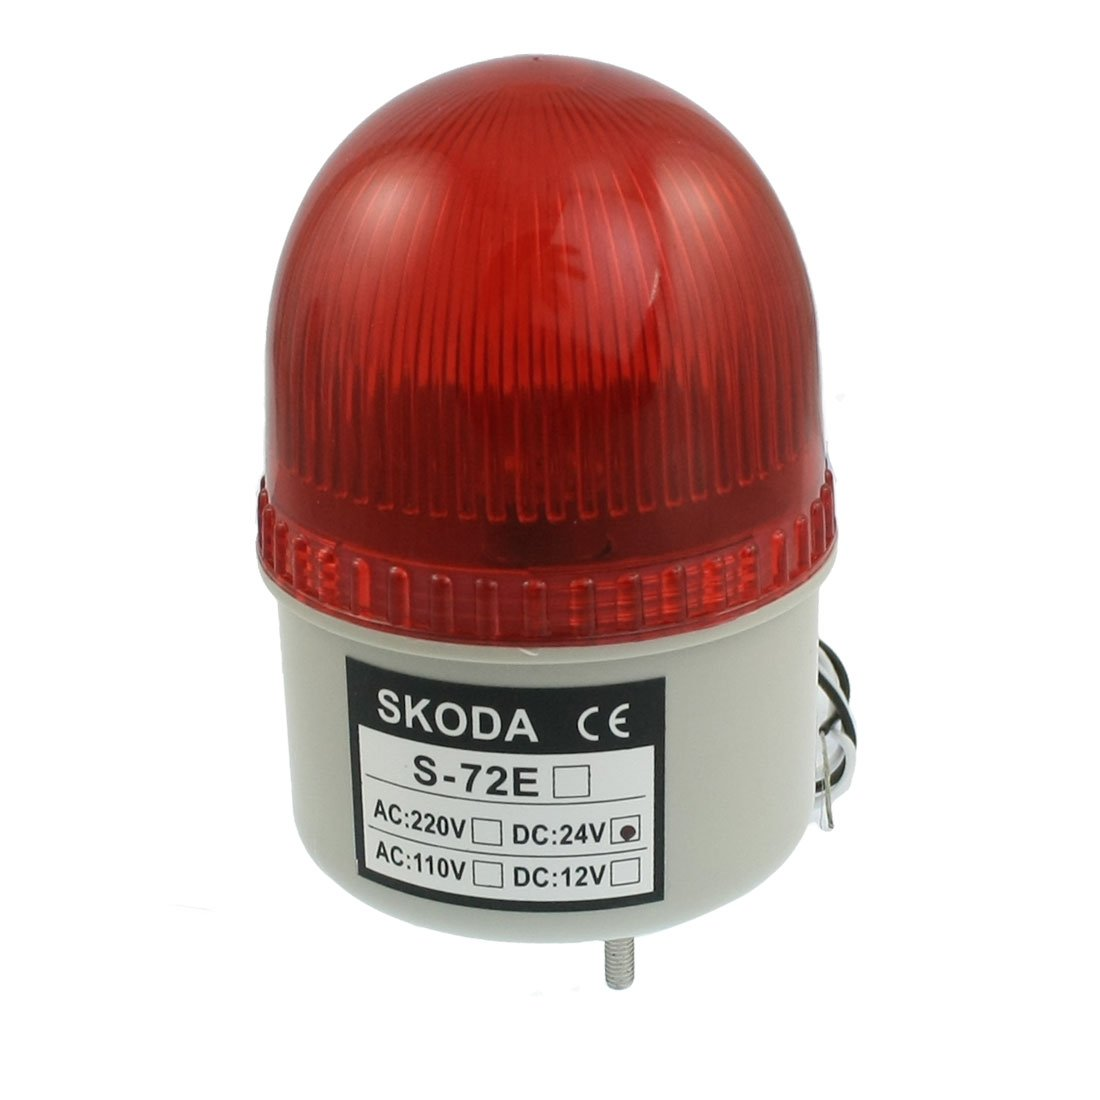 uxcell DC 24V Industrial Signal Tower Red LED Warning Light by uxcell (Image #1)